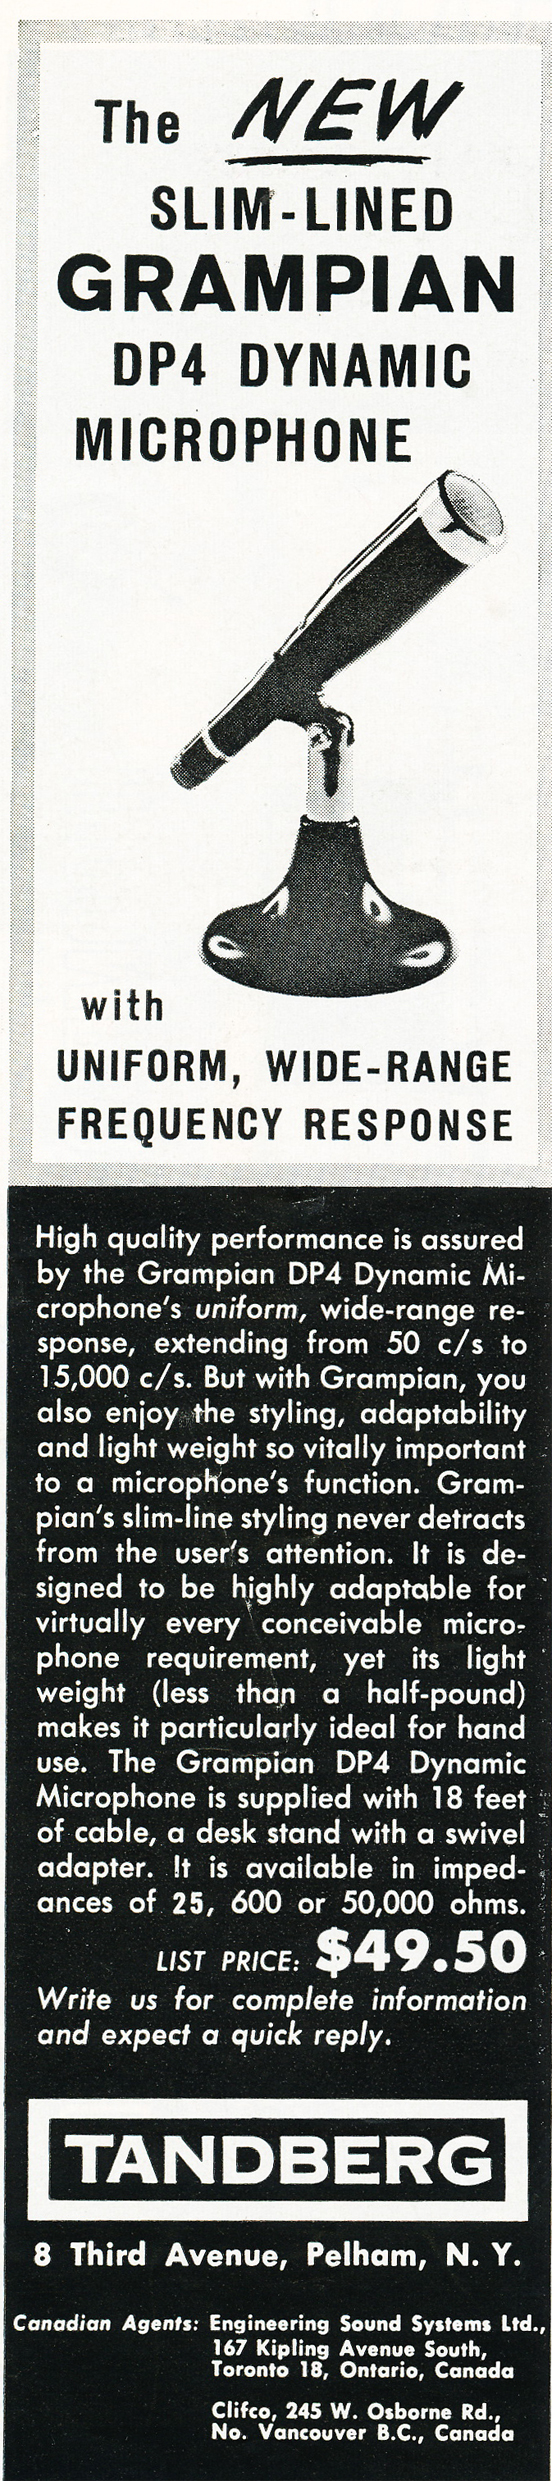 1959 ad for the Tandberg Microphones in Reel2ReelTexas.com's vintage recording collection